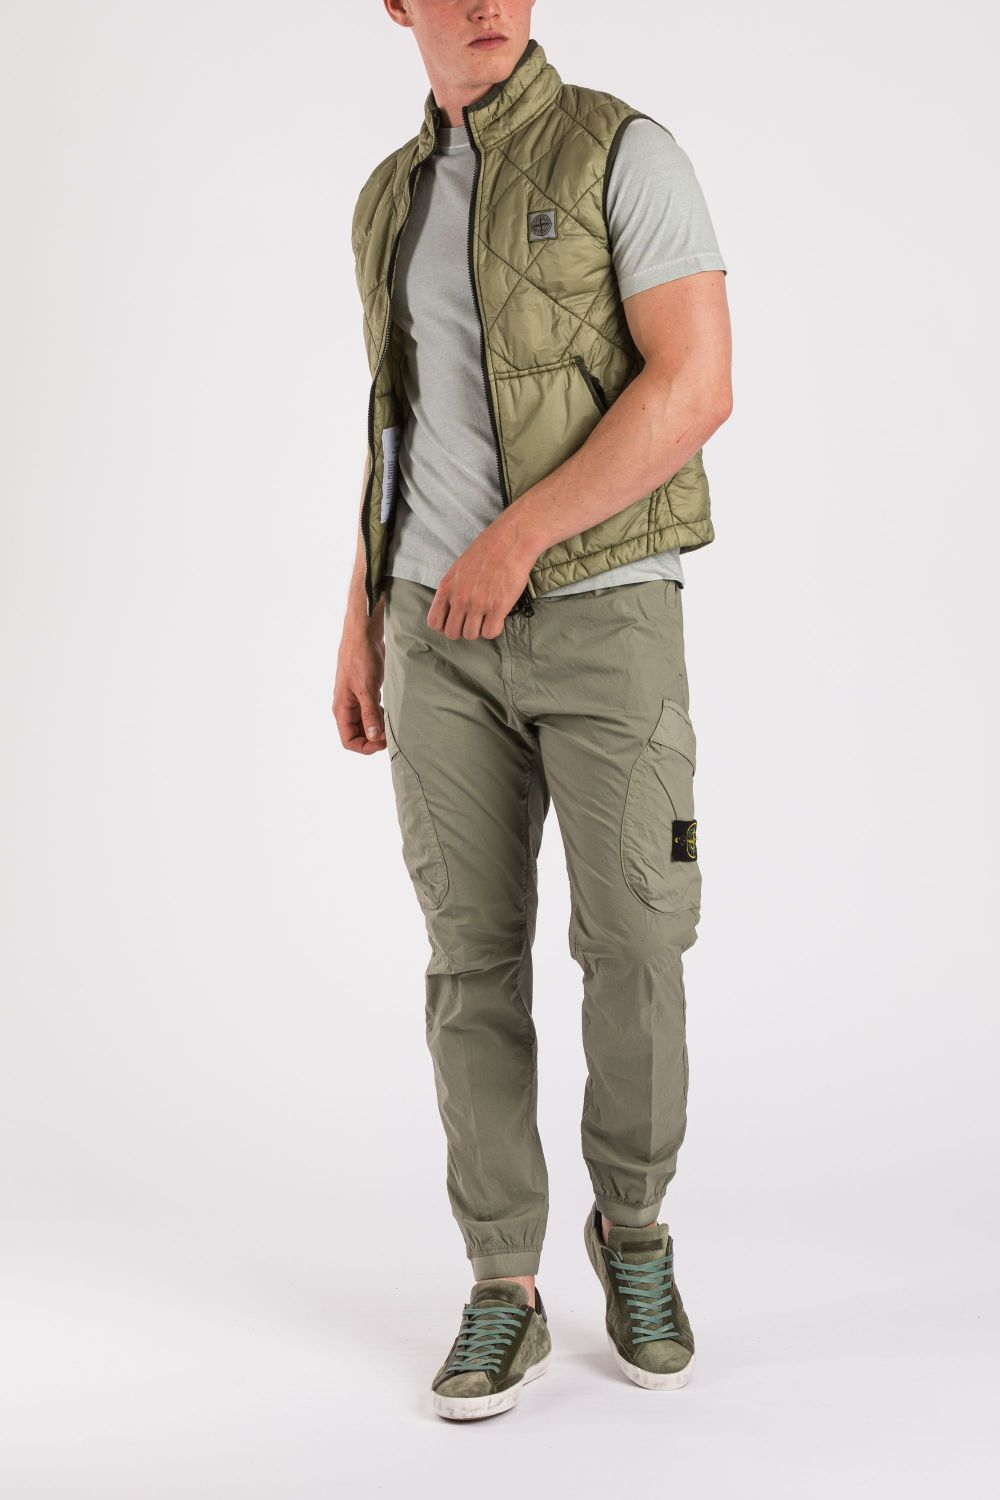 Stone Island Herren Steppweste Garment Dyed Quilted Micro Yarn Olive 2